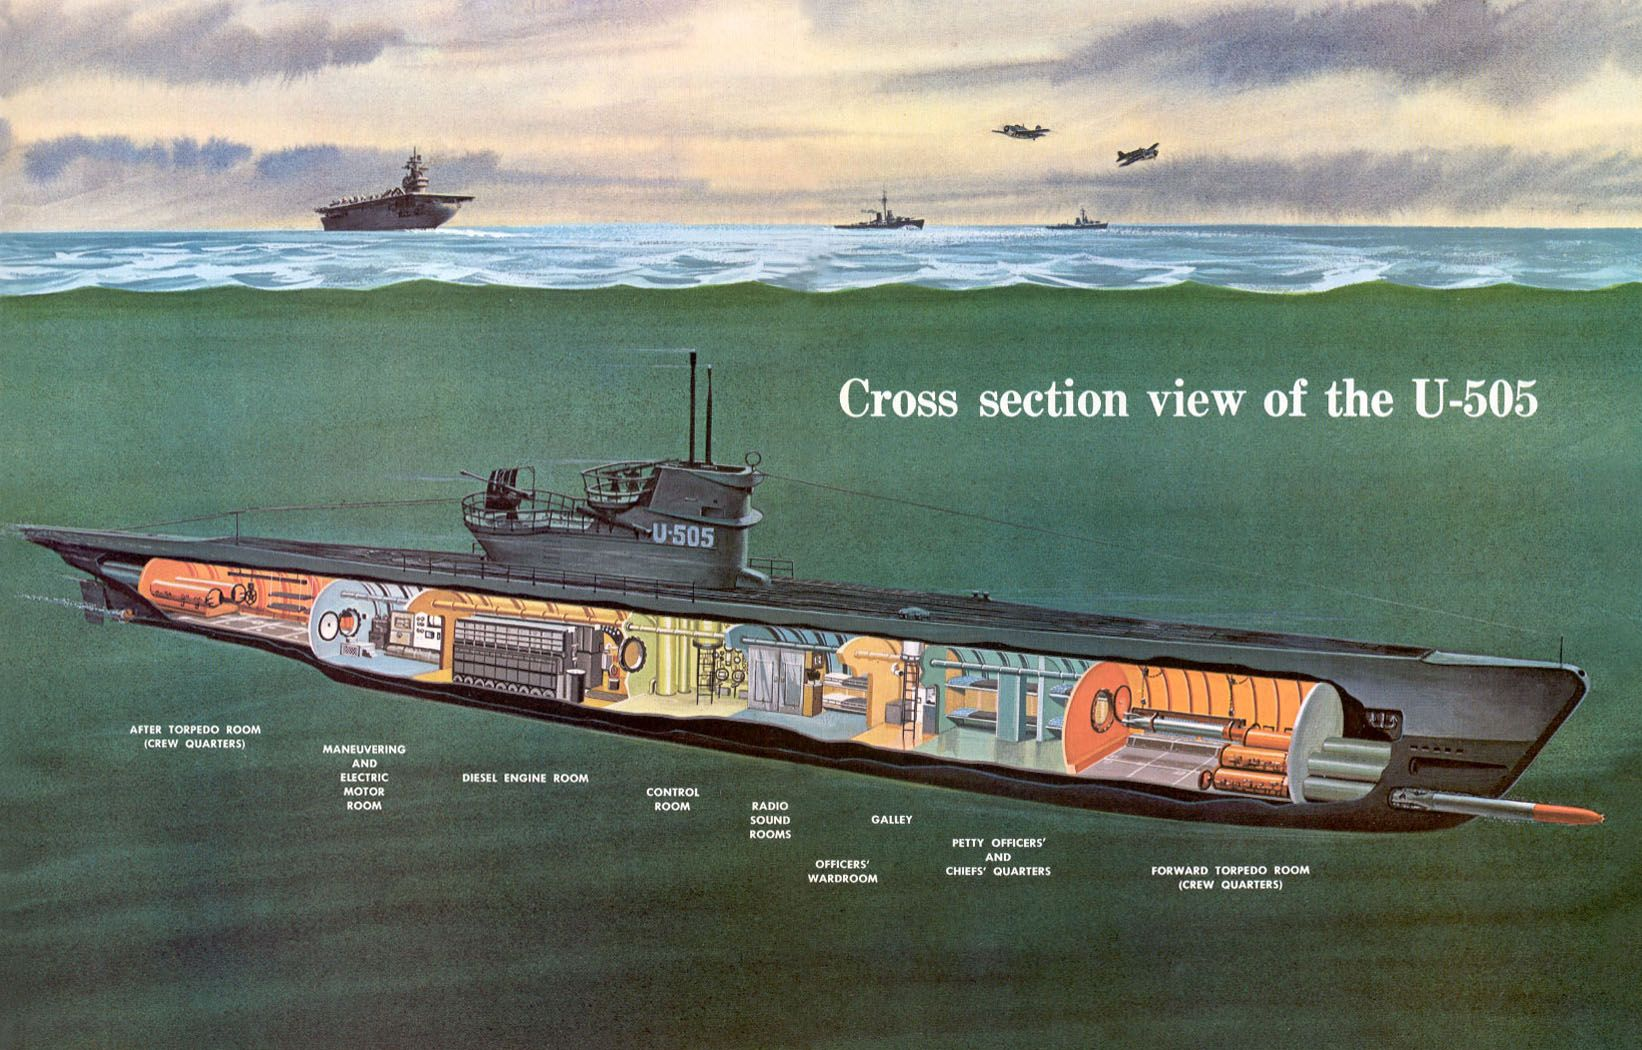 UillusHiRezMSIjpg  Pixels Submarines - Ship museums in us